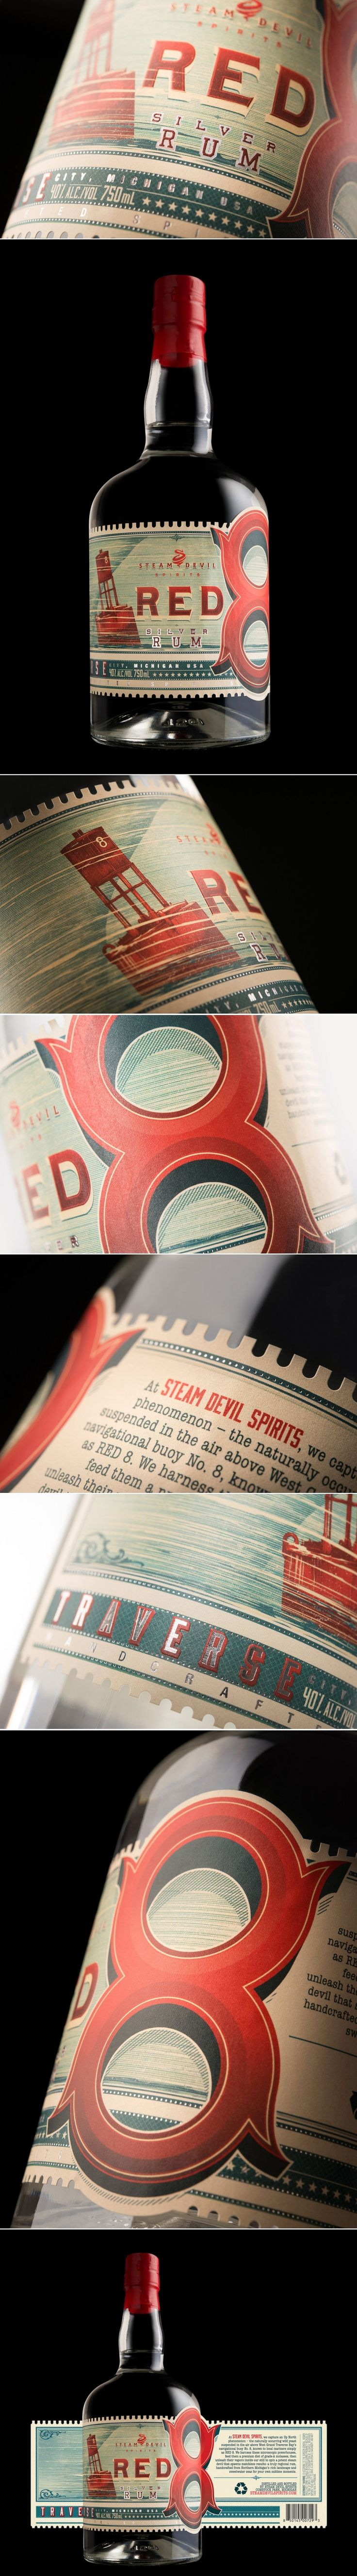 This Rum Has Some Retro Vibes — The Dieline   Packaging & Branding Design & Innovation News